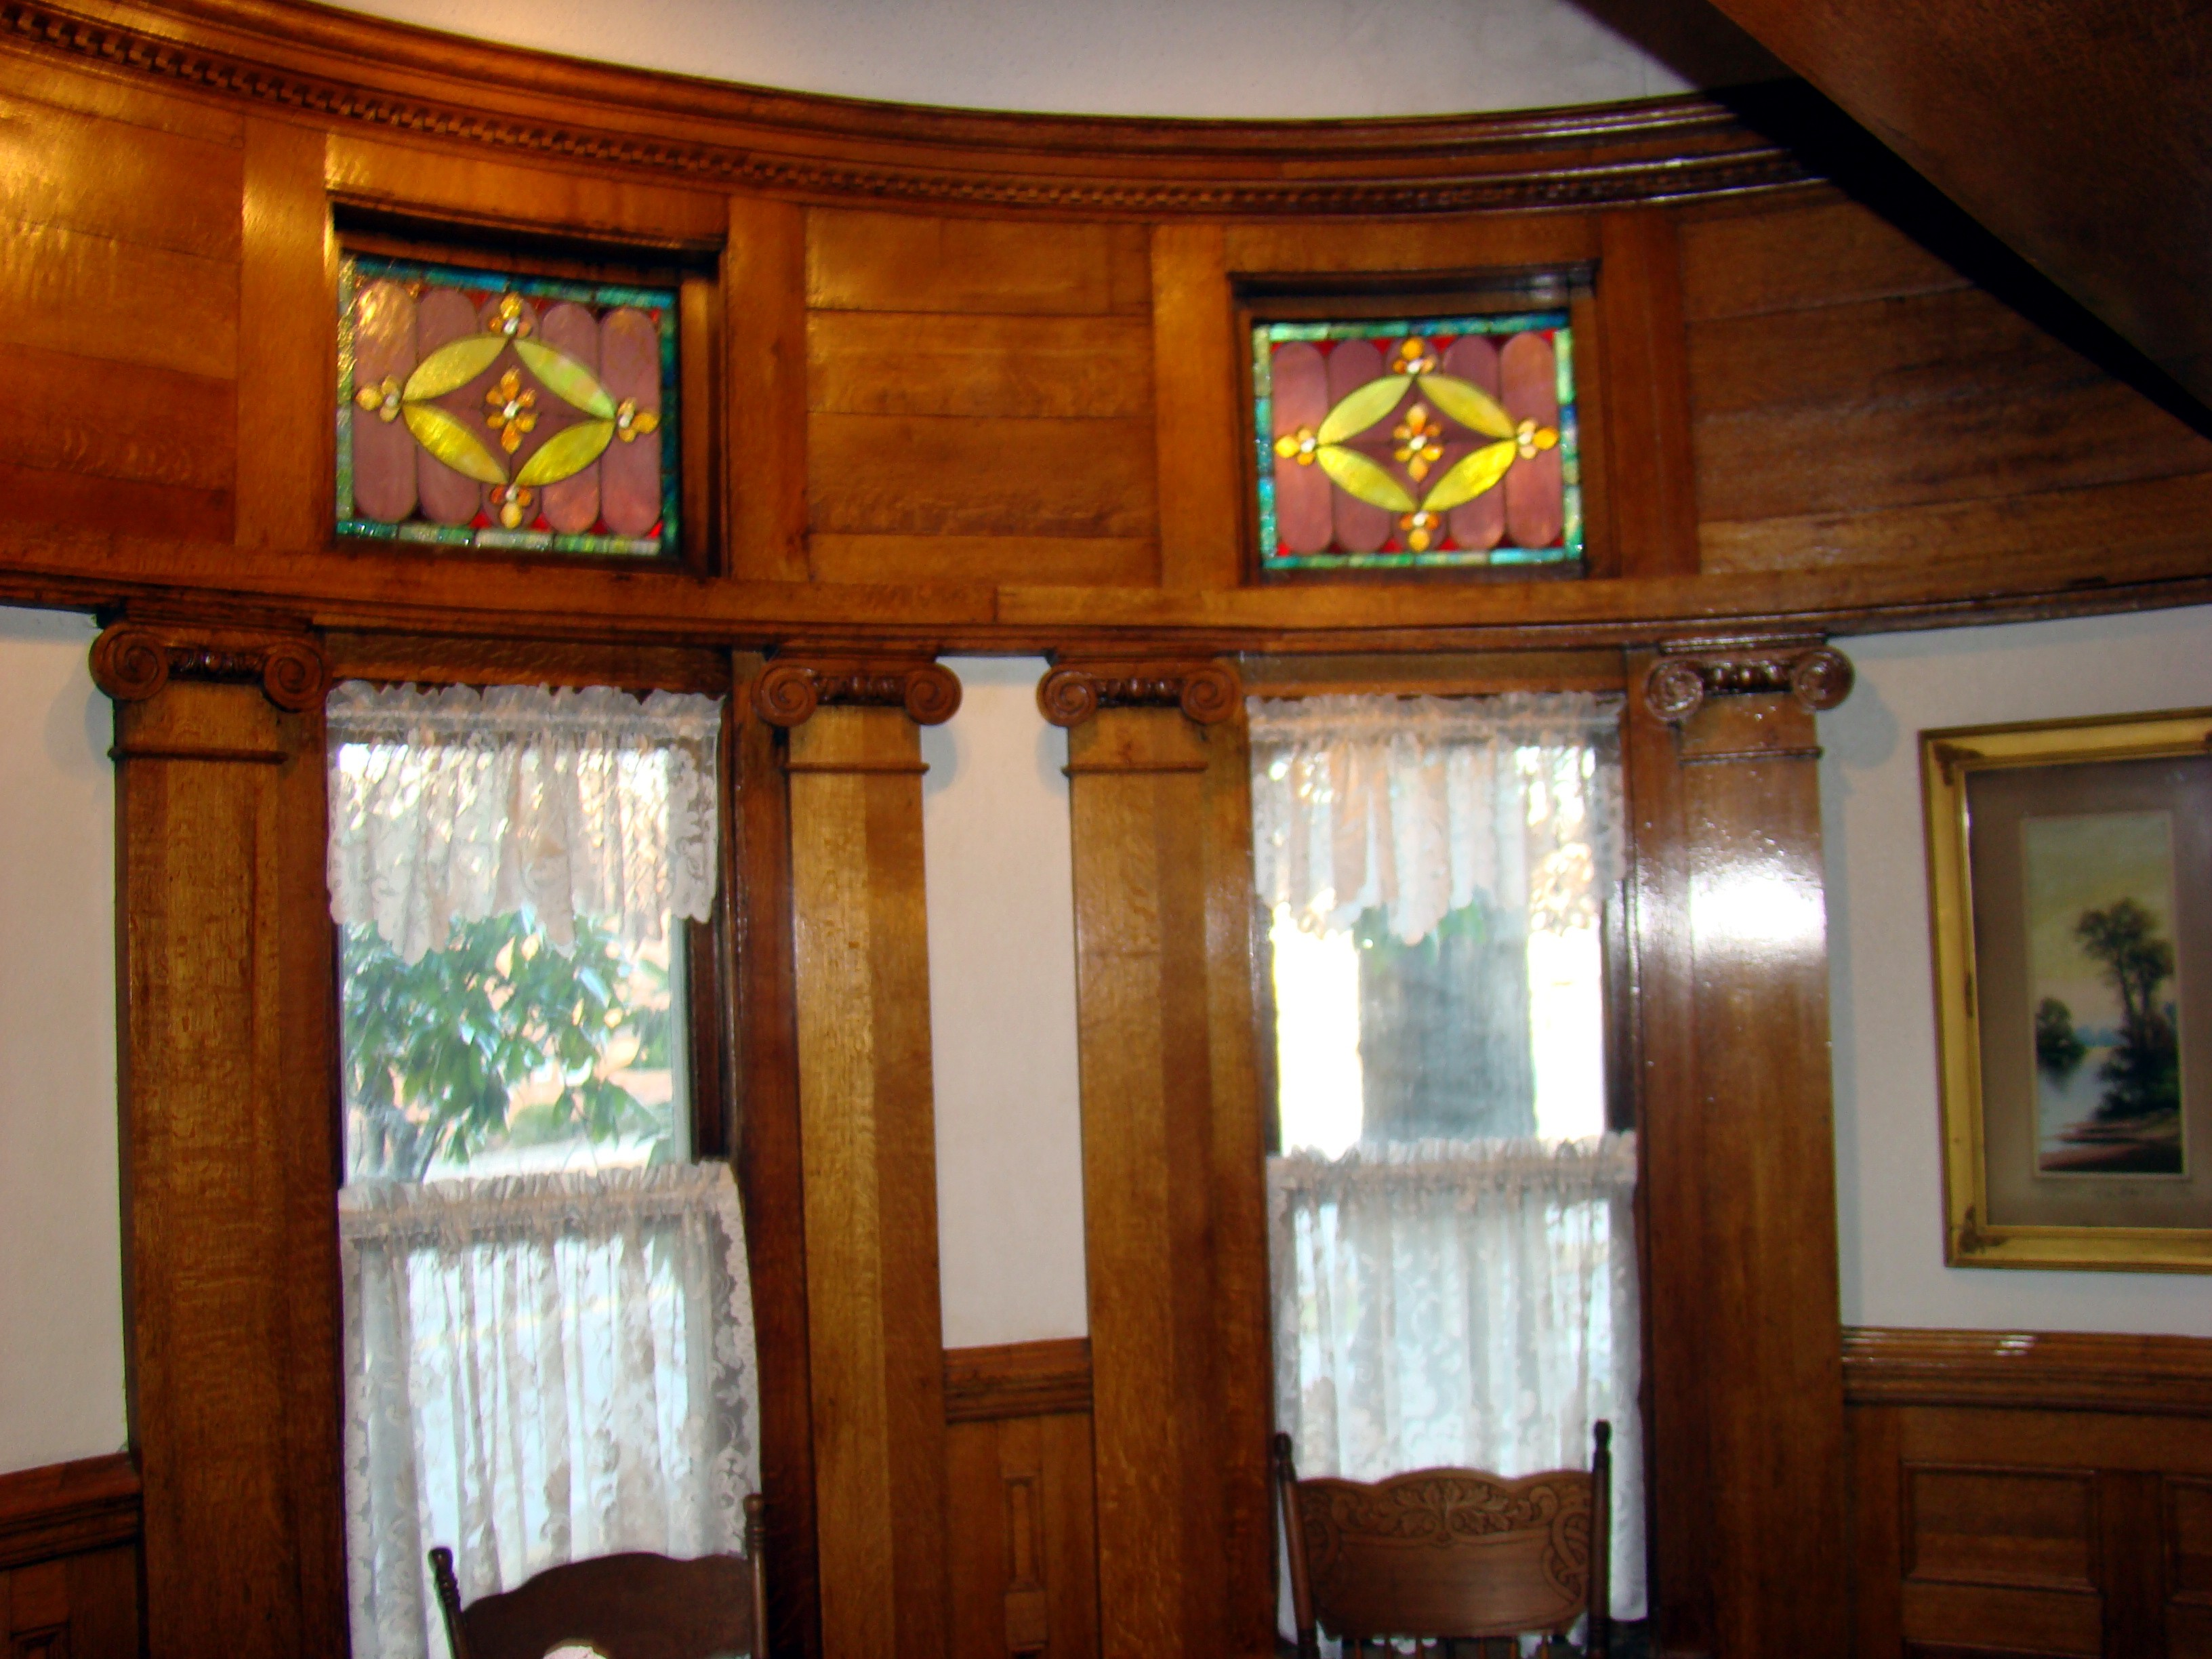 File simmons bond house diningroom stained glass window for Dining room c house of commons